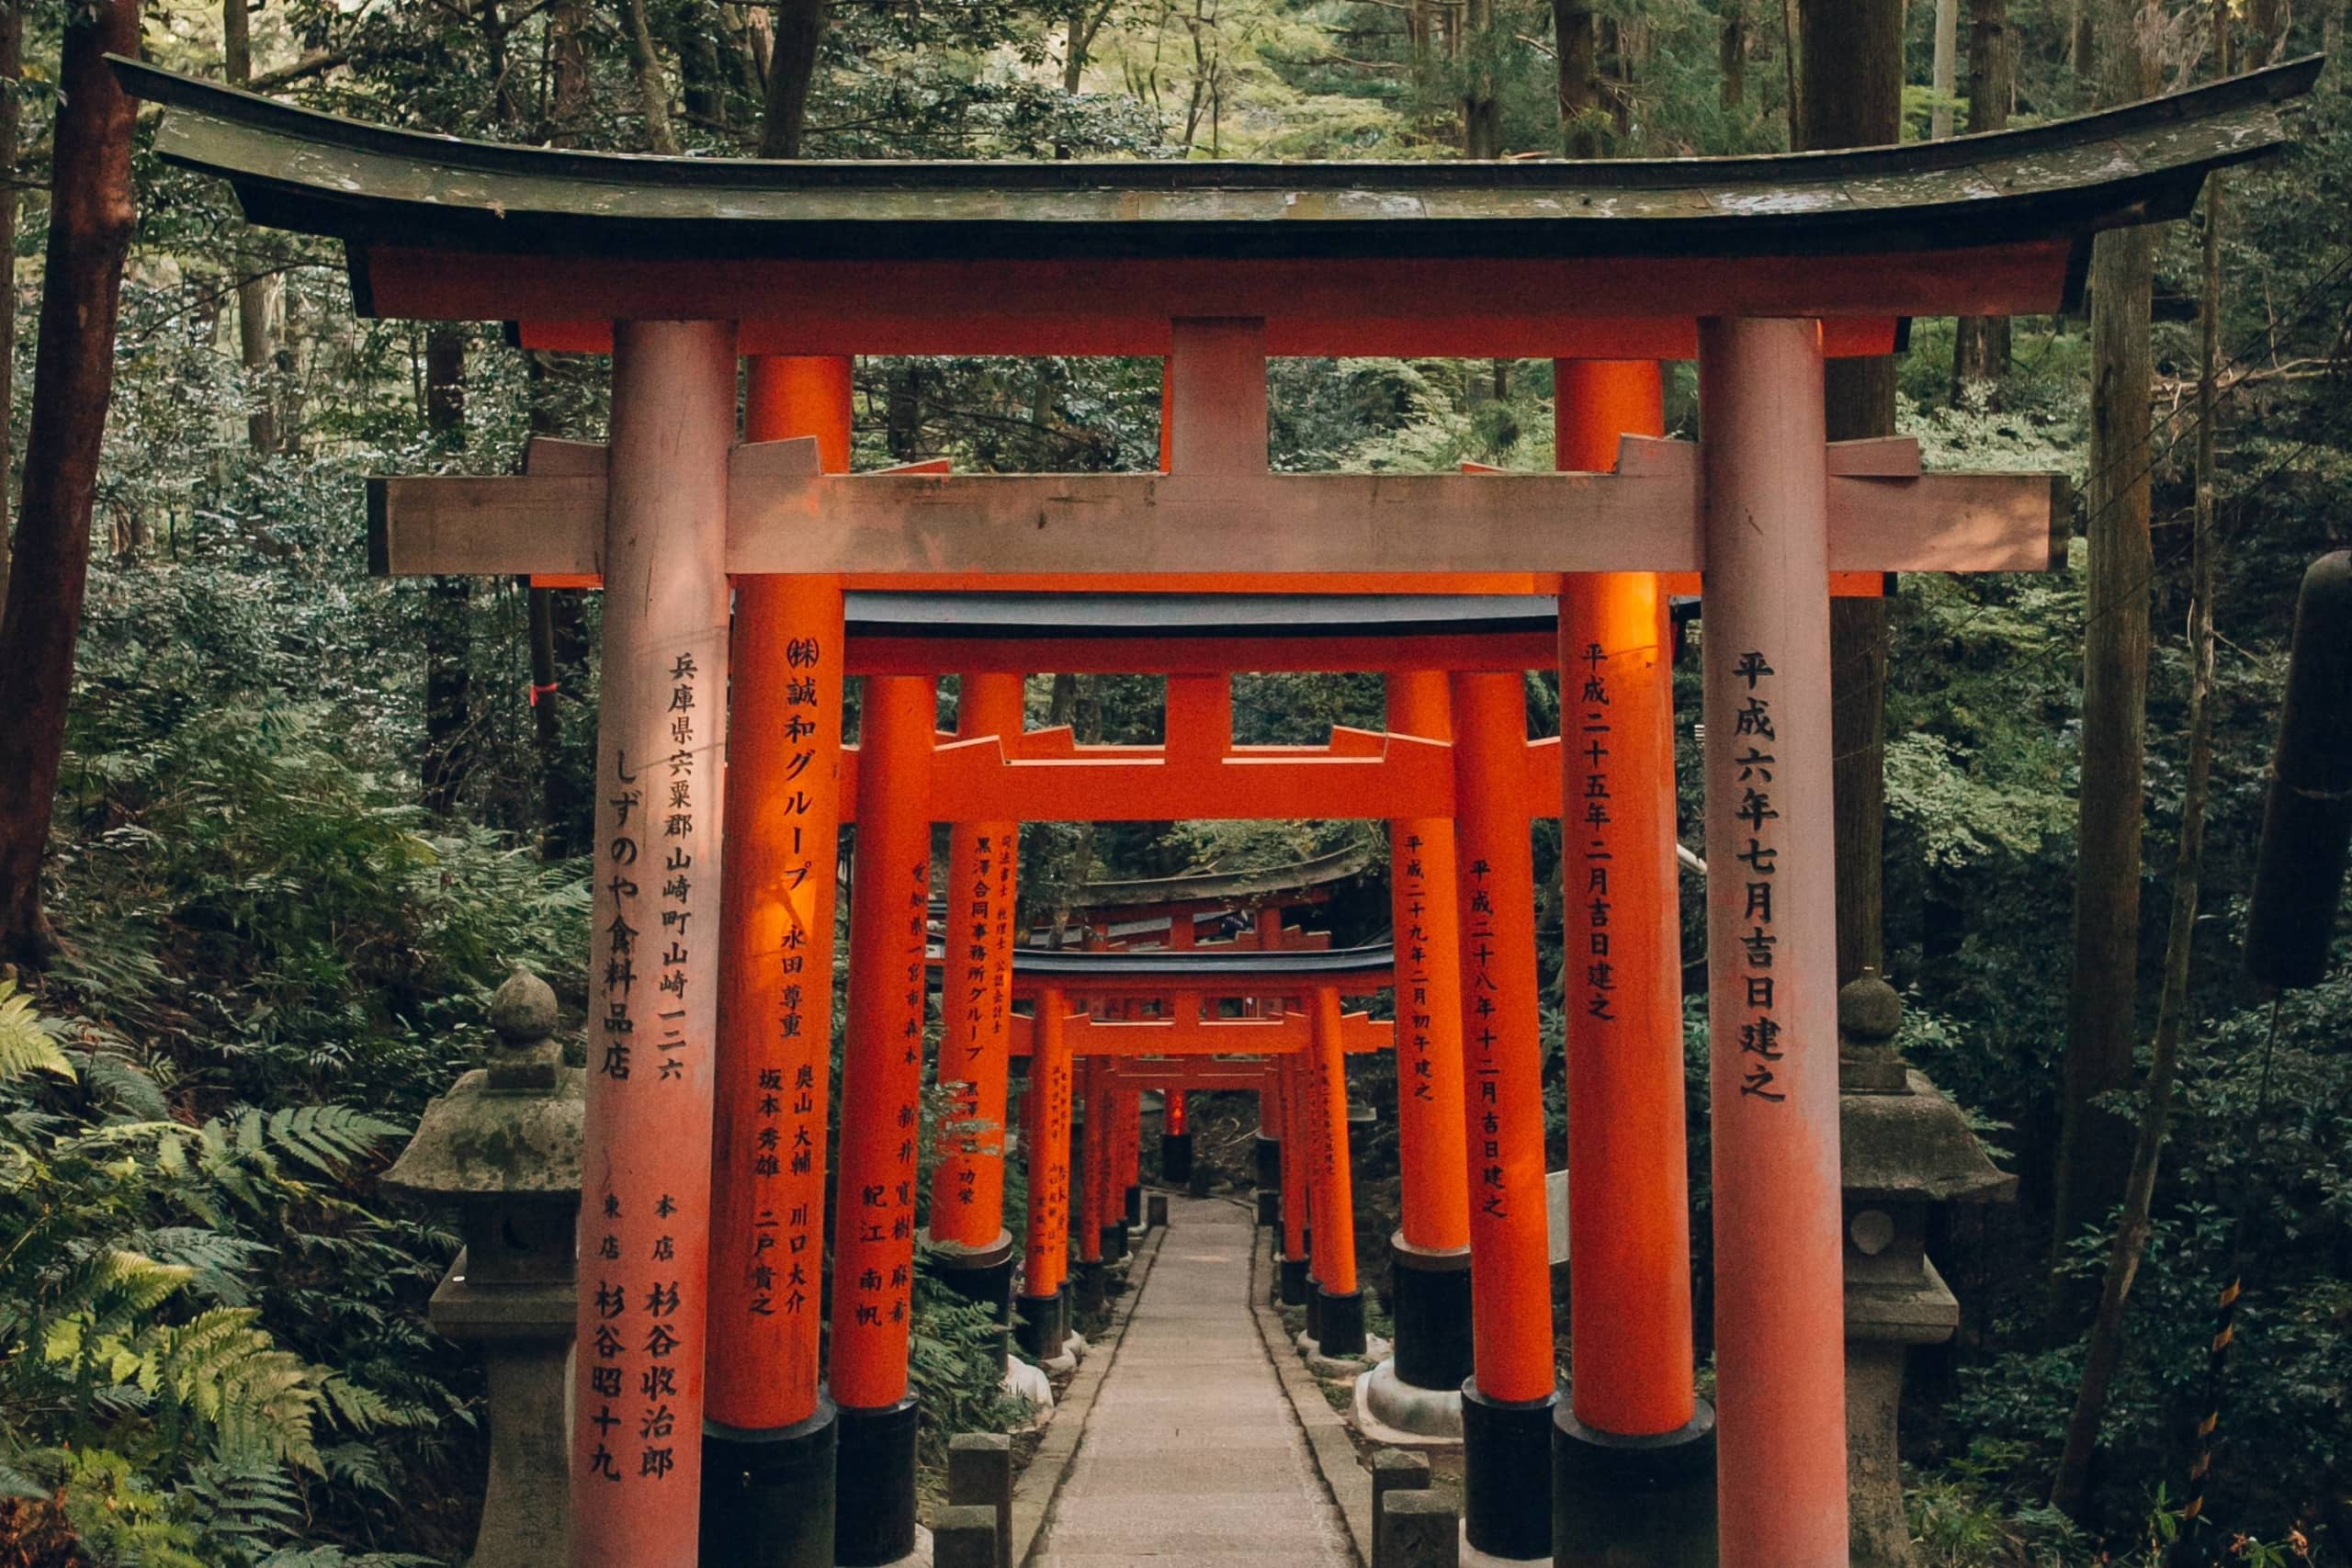 The Fushimi Inari Taisha shrine in Kyoto is one of Japan's most photogenic places to visit. | COURTESY OF HAARKON ADVENTURES